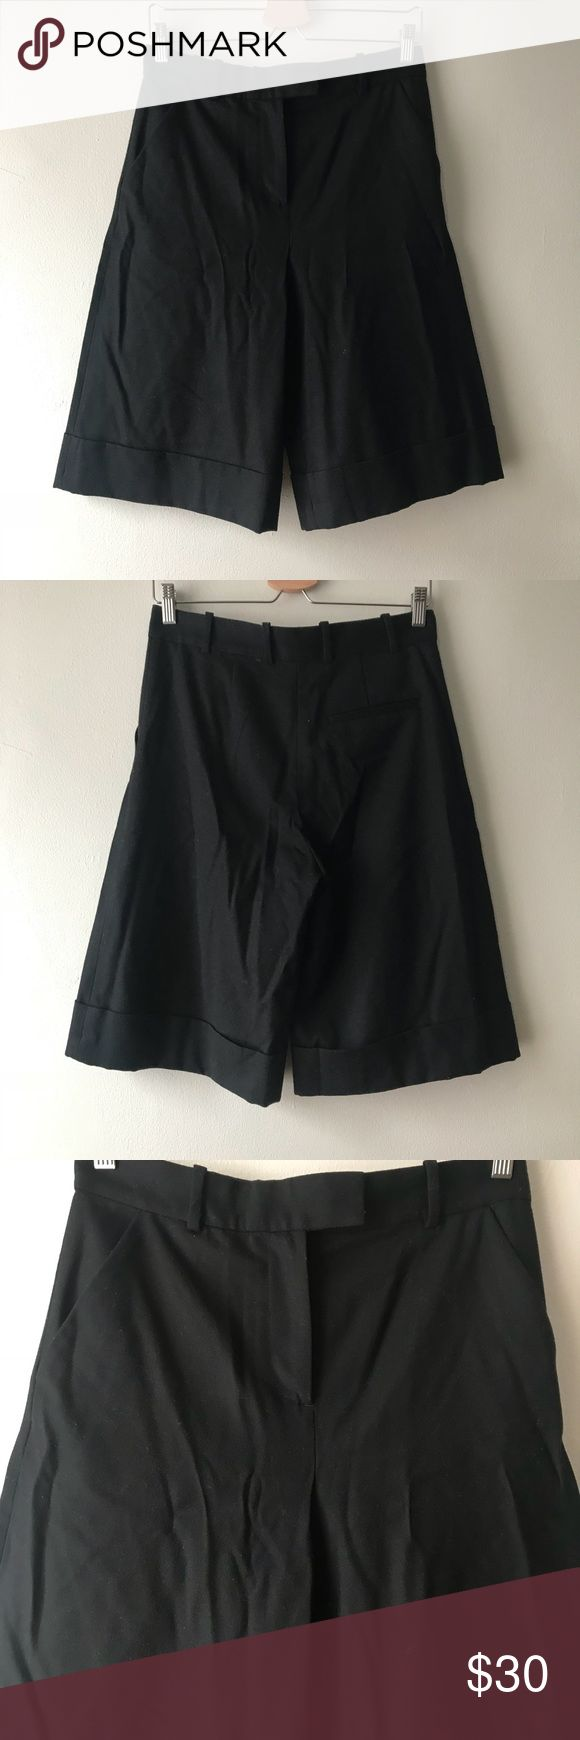 "COS Shorts 4 Wool Blend Black Size 4 Cool wool blend tailored shorts. Missing one closure see photos.  Rise: 11"" Inseam: 12"" COS Shorts"